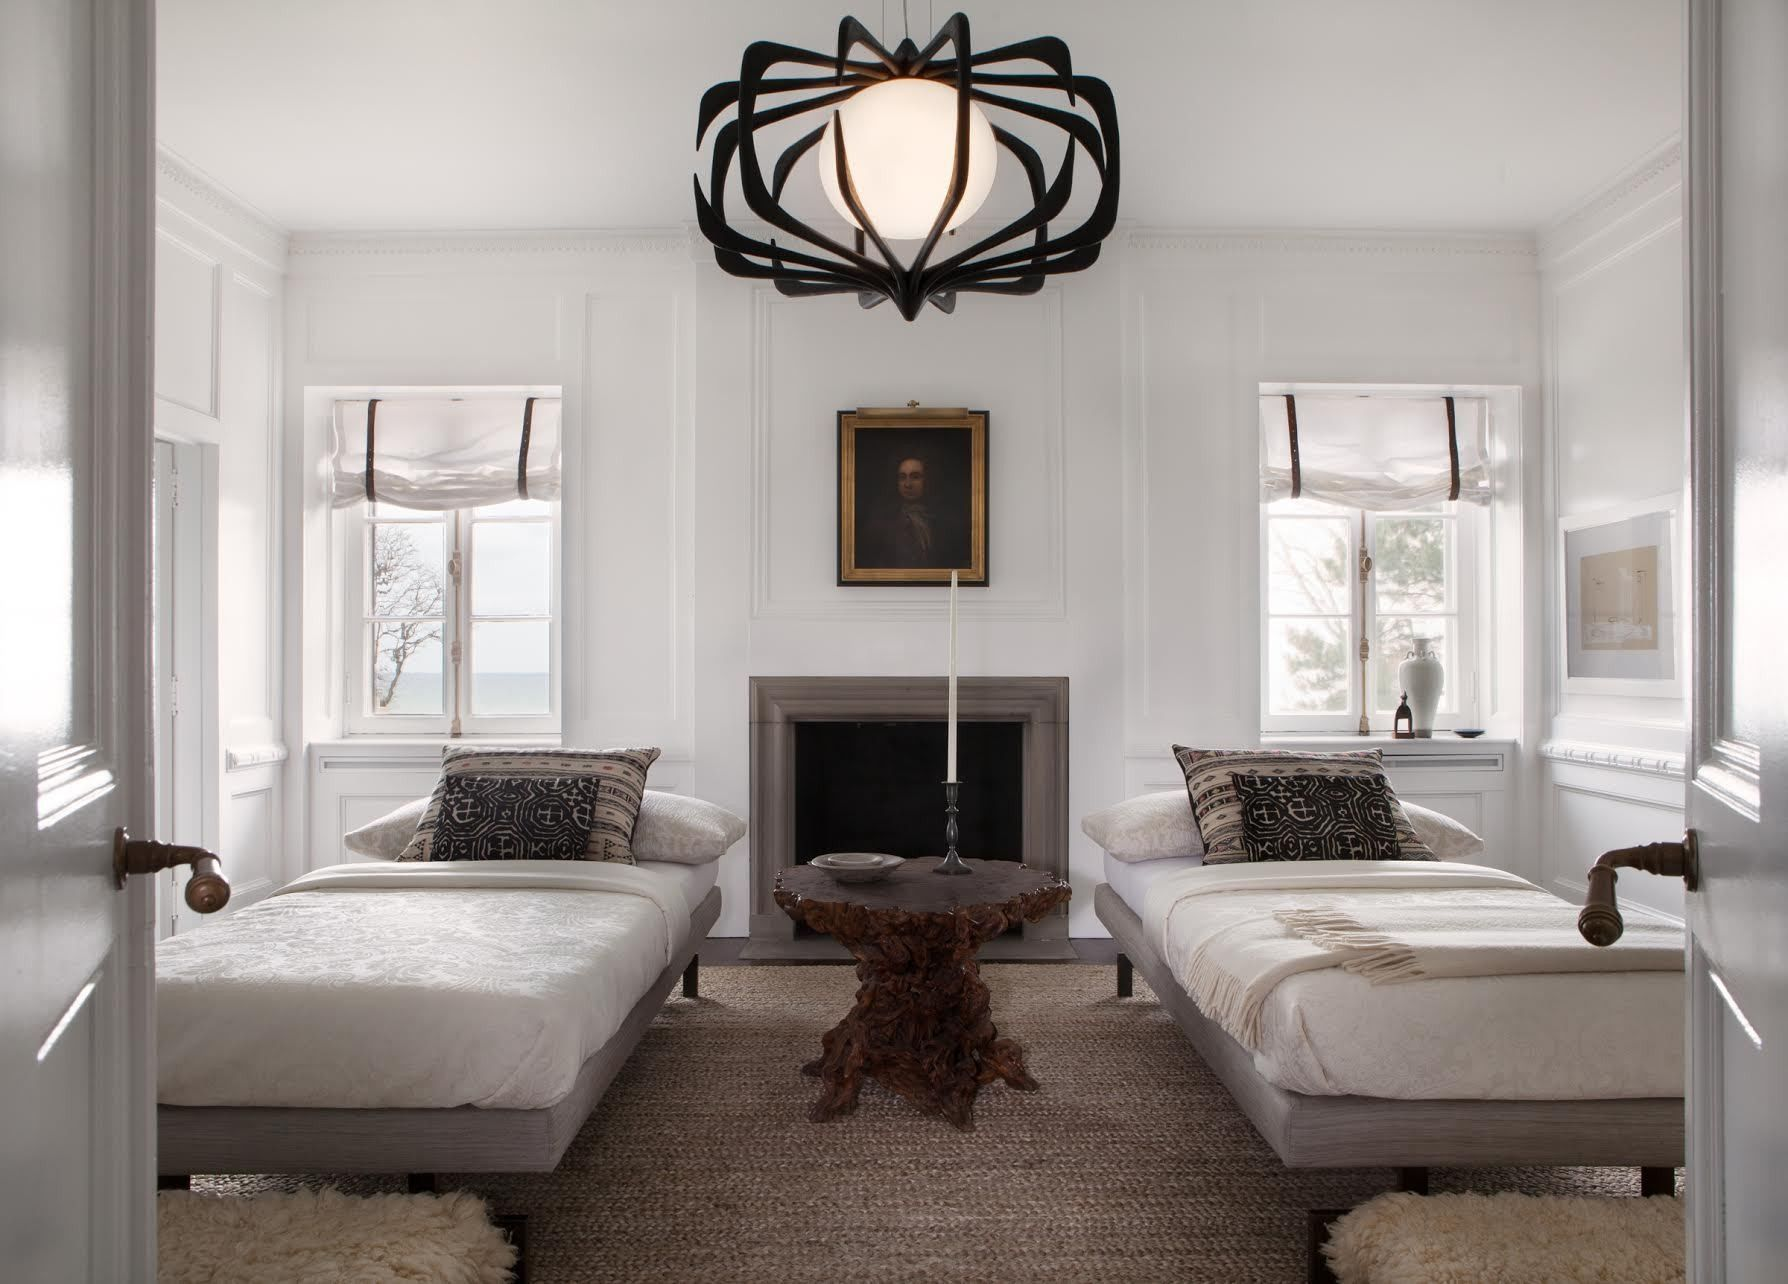 5 Tips From an Unconventional Guest Room   Lonny.com